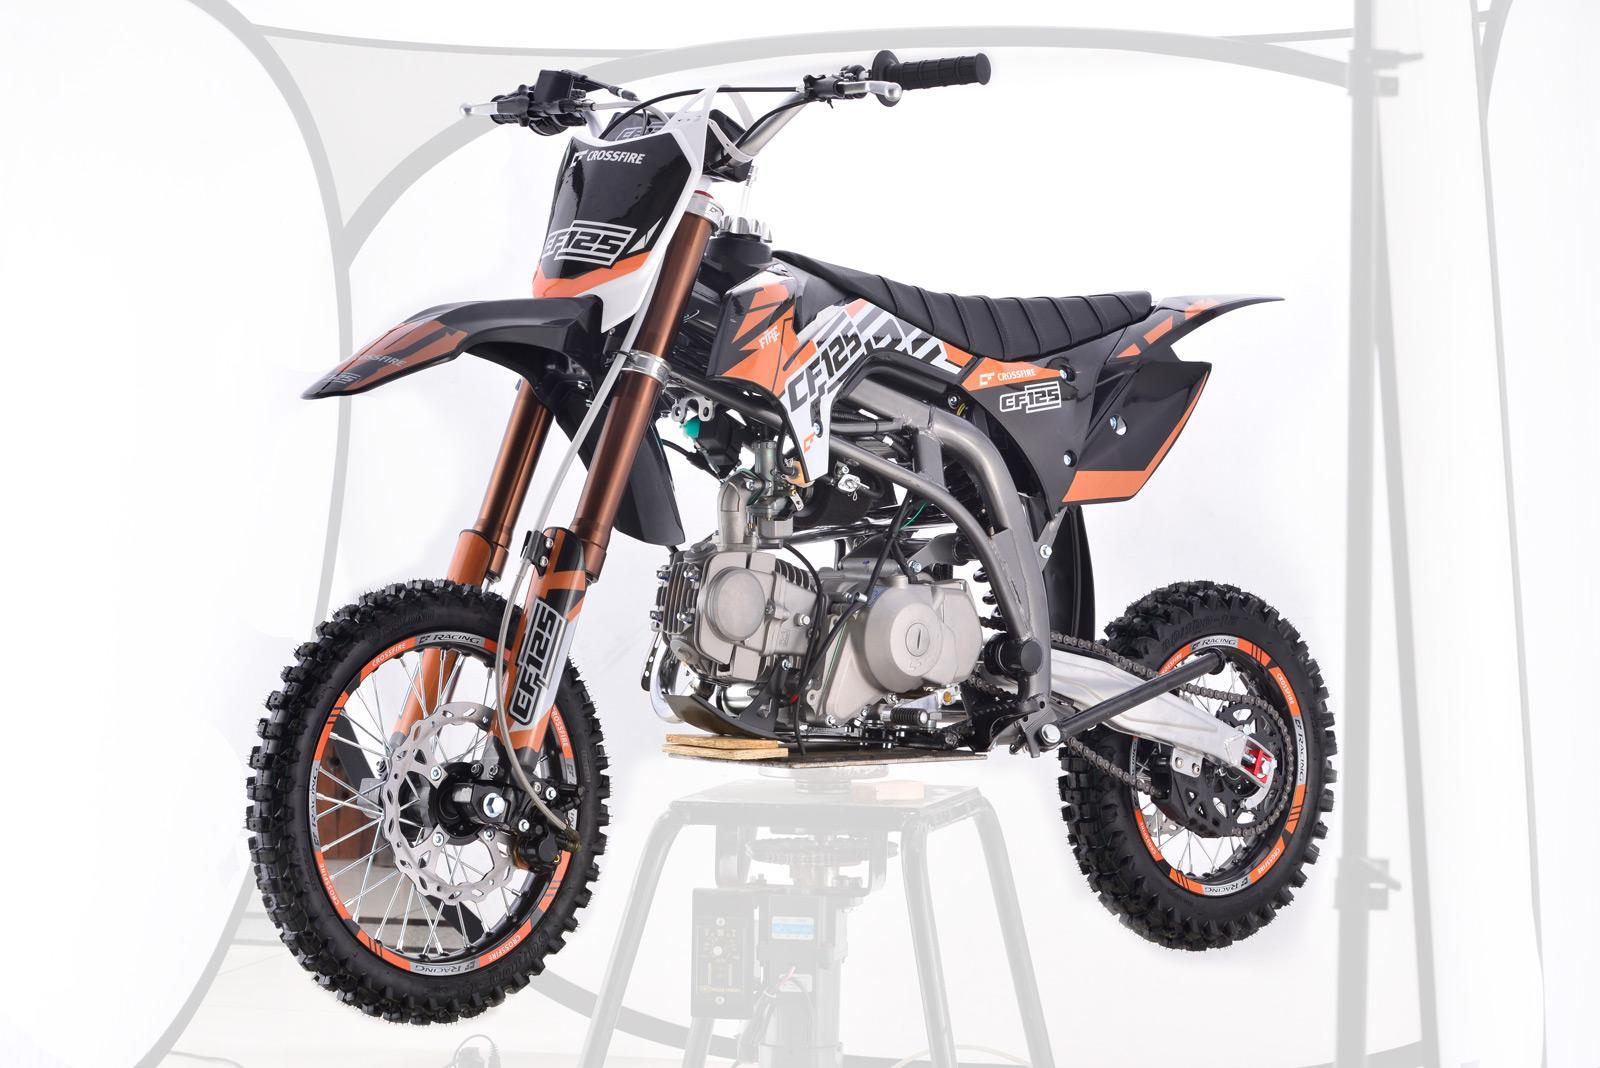 Crossfire CF125 2018-2019 Black - dirt bikes store chinchilla